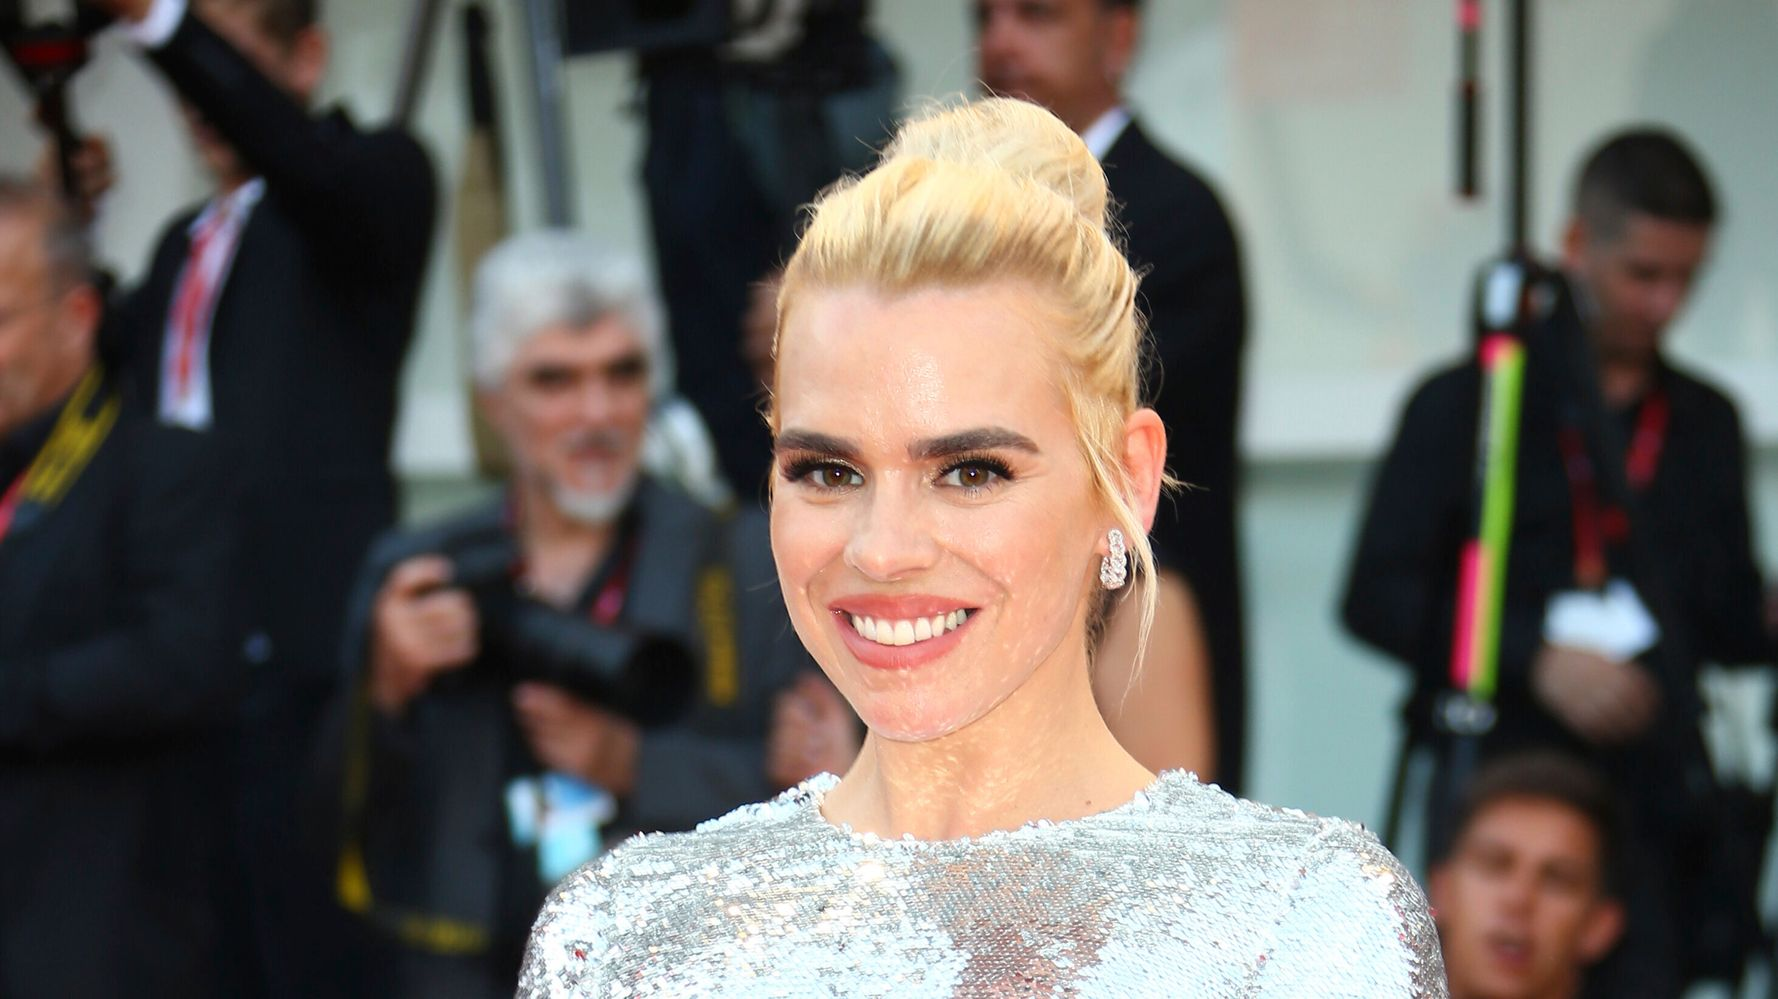 Billie Piper Was 'Worried' About Having A Daughter – And Relieved Her First Two Kids Were Boys